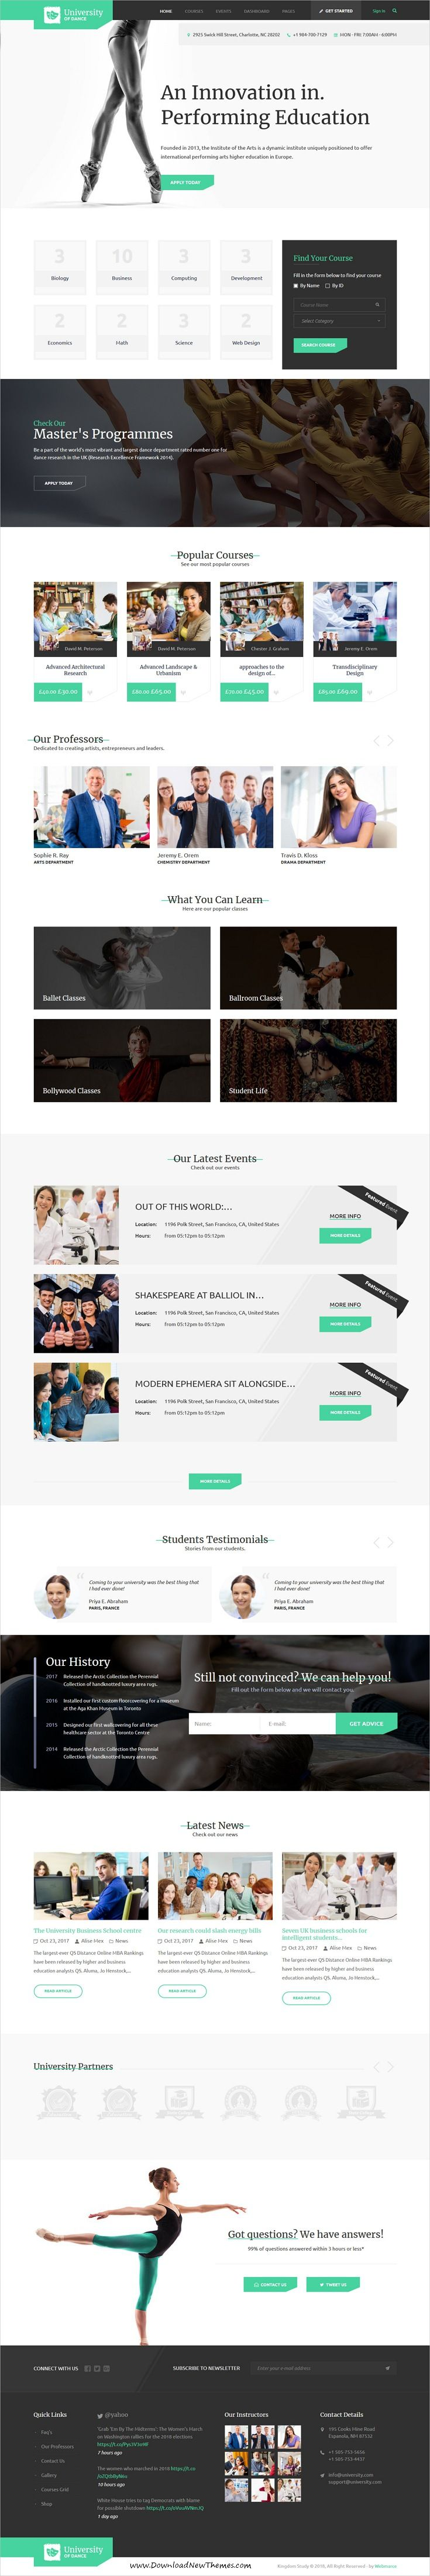 Kingdom Study Is Clean And Modern Design 4in1 Responsive Wordpress Theme For College Online Courses And Lms Learning Management System Website To Live Previ